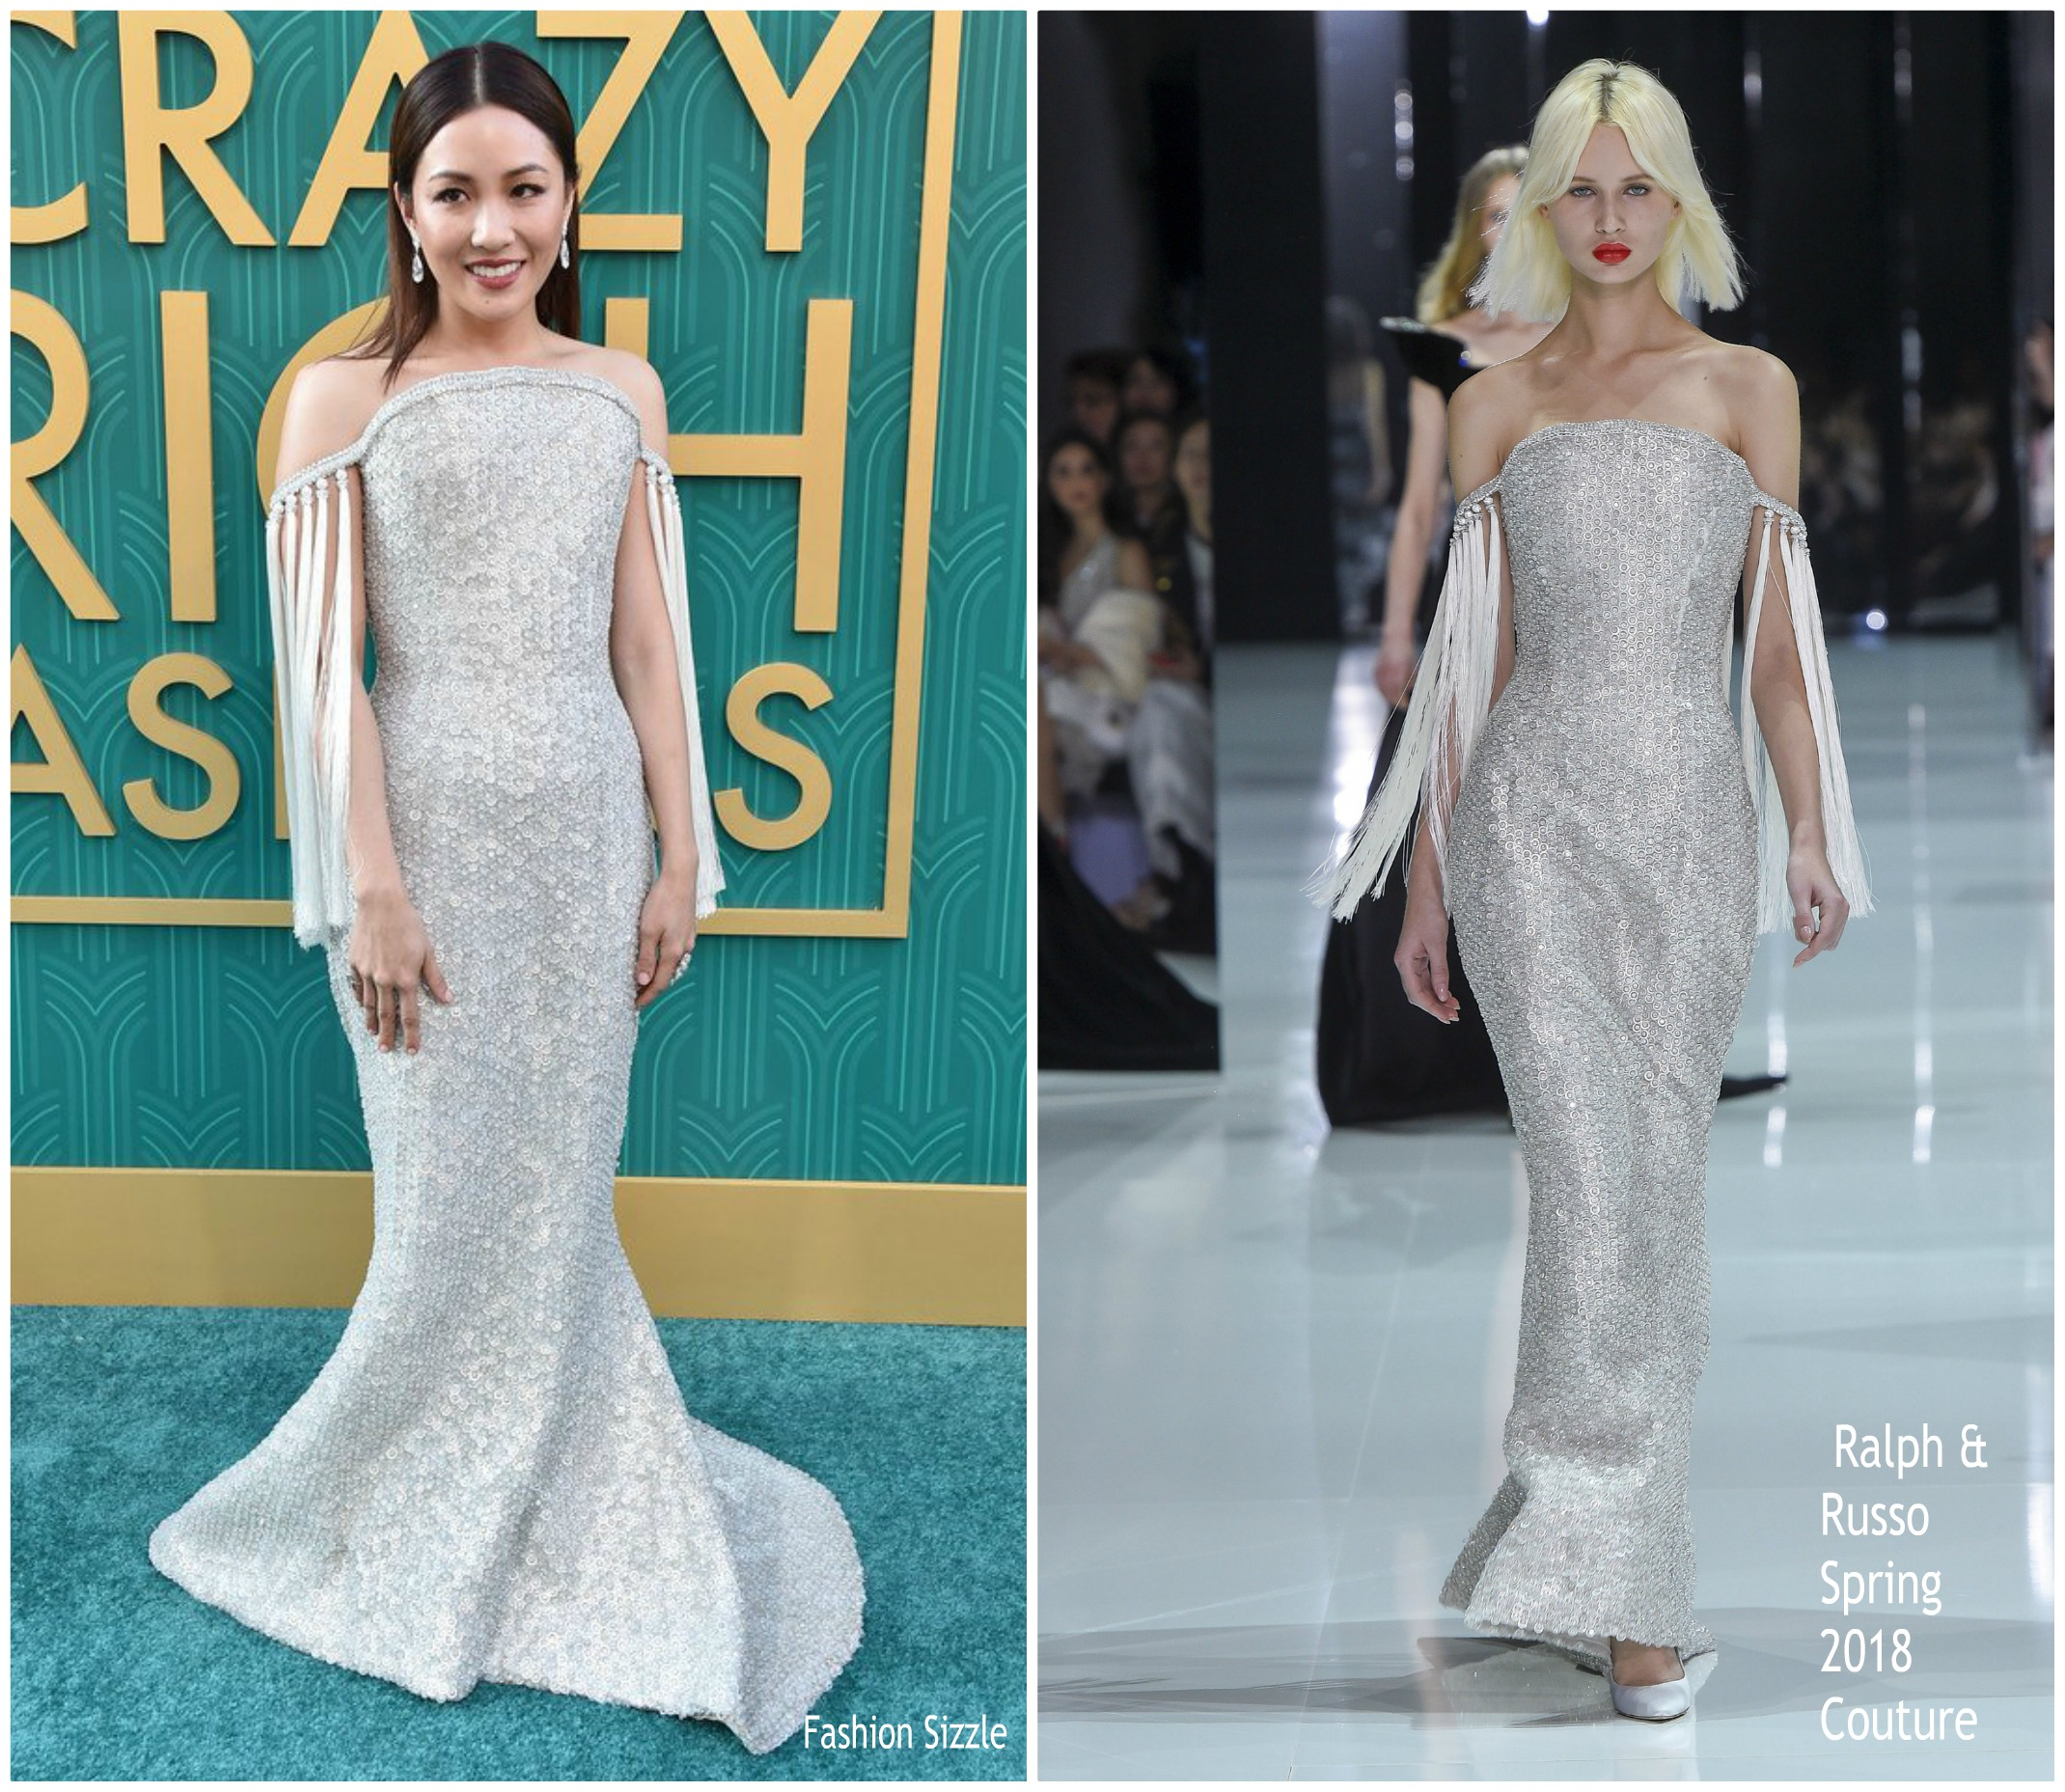 constance-wu-in-ralph-russo-couture-crazy-rich-asians-la-premiere